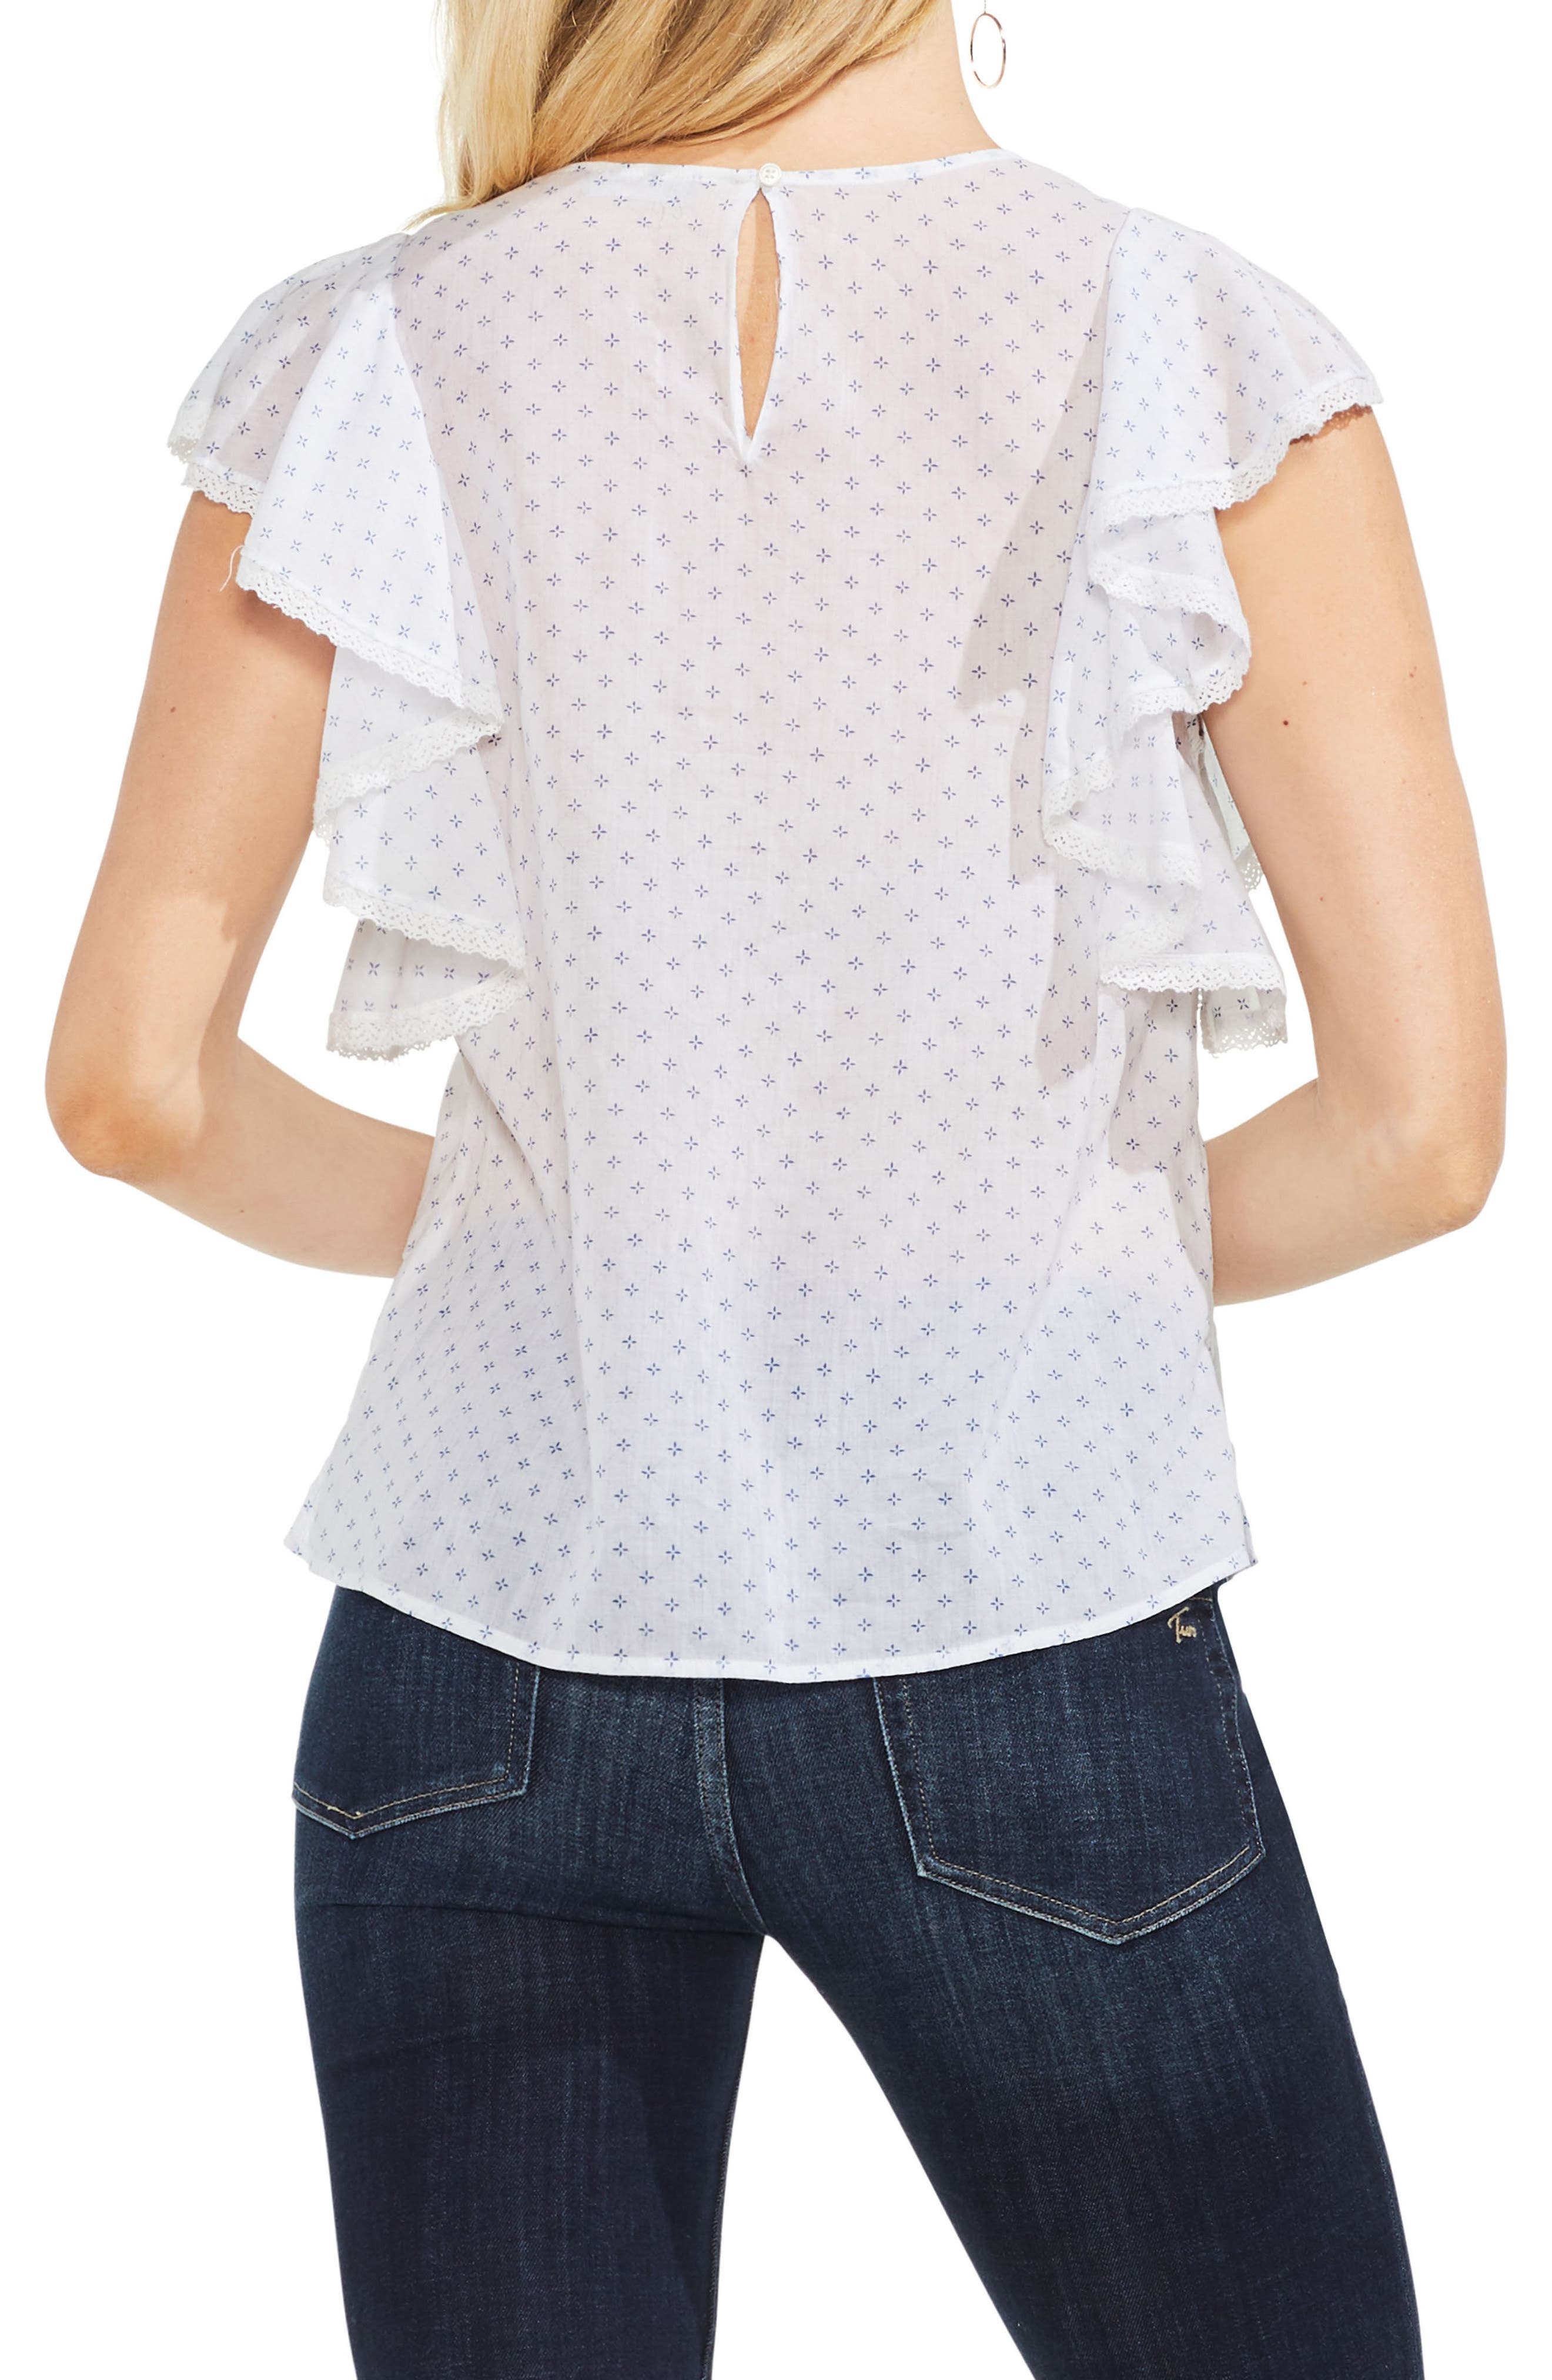 Ruffled Floral Embroidered Top,                             Alternate thumbnail 2, color,                             145